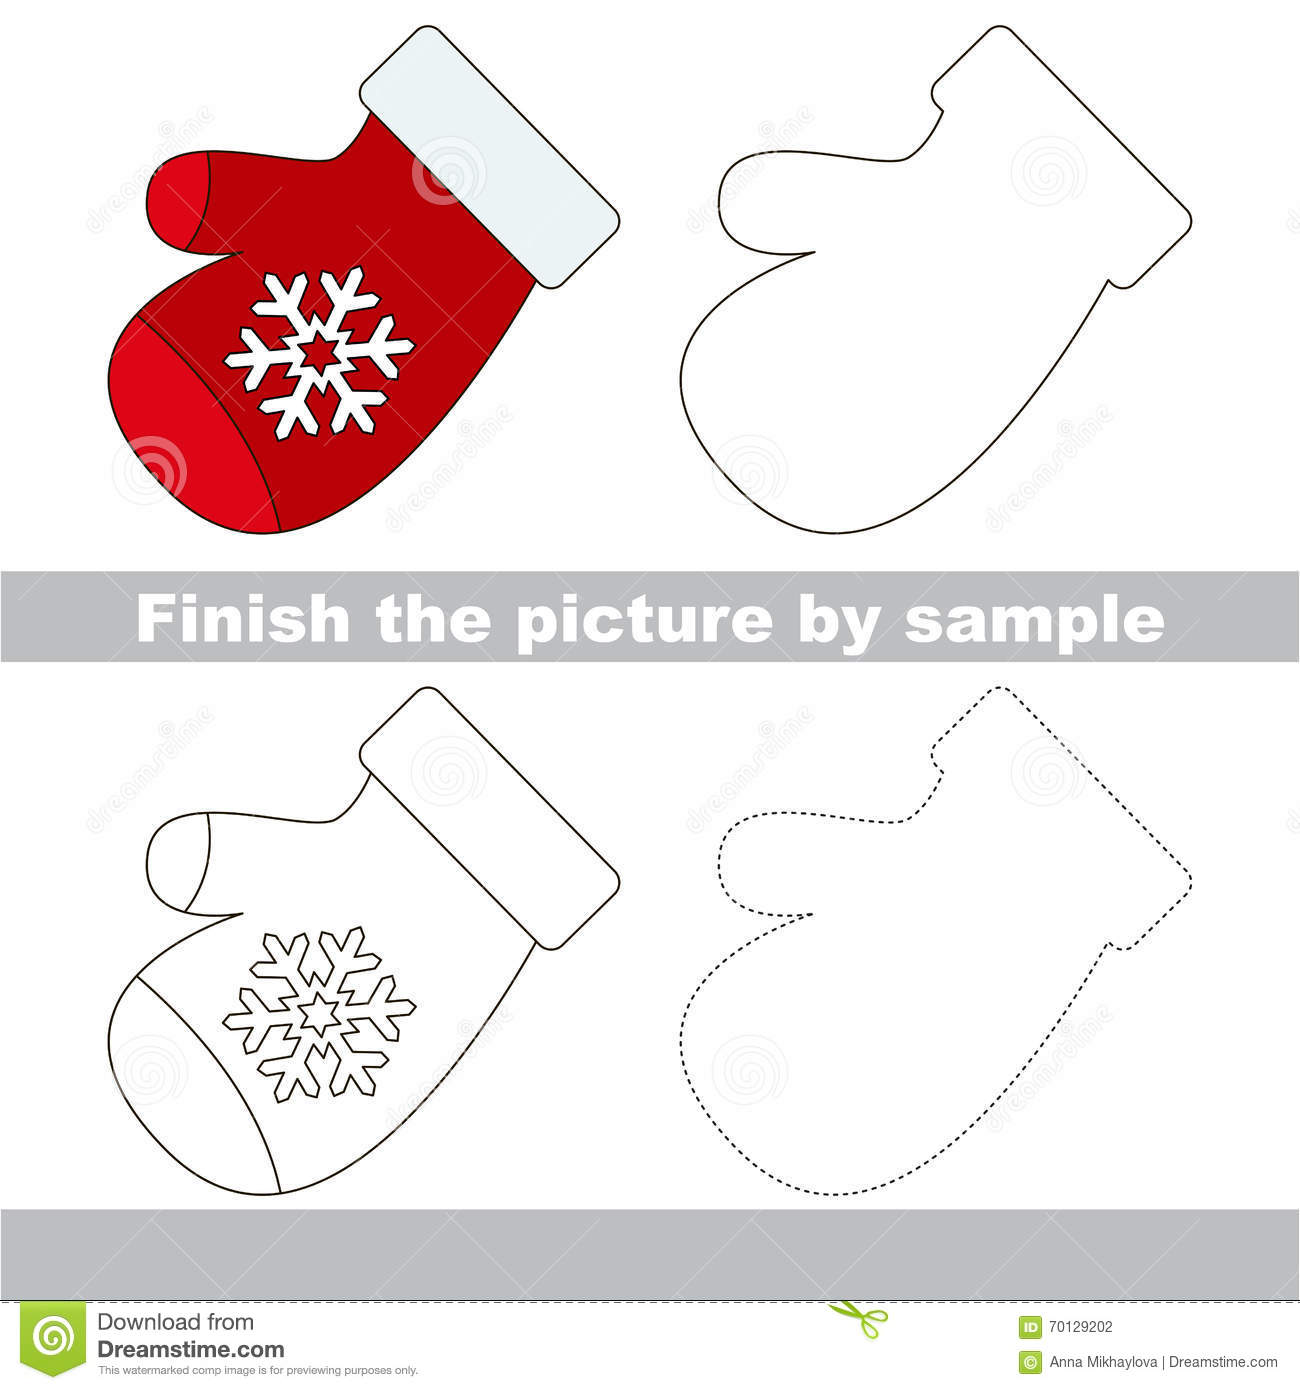 ... worksheet for children. Finish the picture and draw the cute Mitten